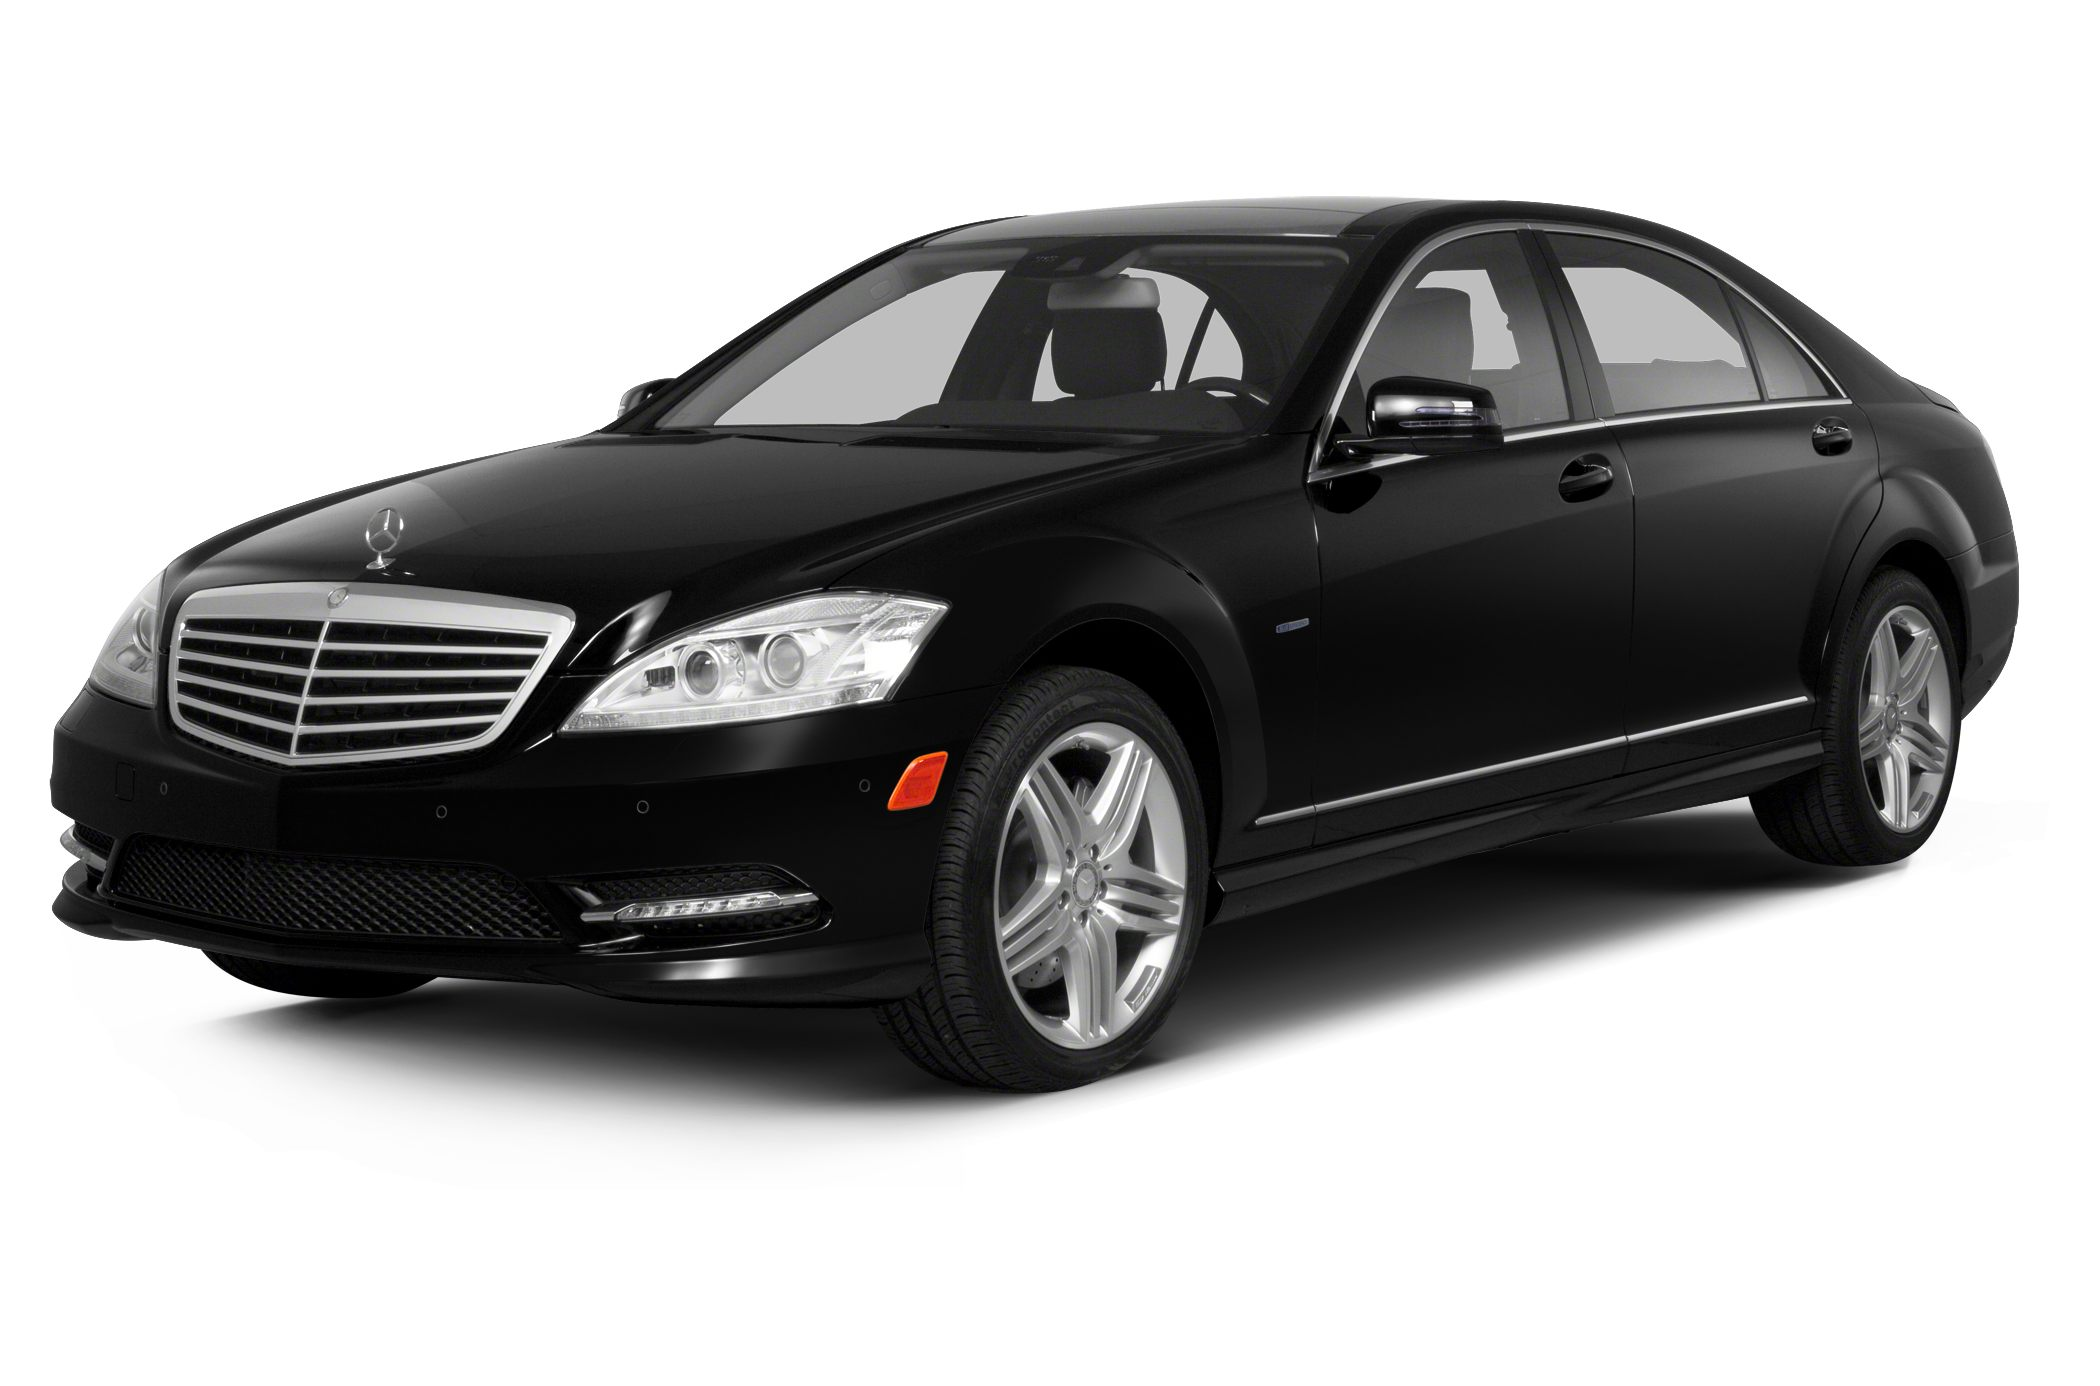 2013 Mercedes-Benz S-Class S550 4MATIC Sedan for sale in Springfield for $62,900 with 16,792 miles